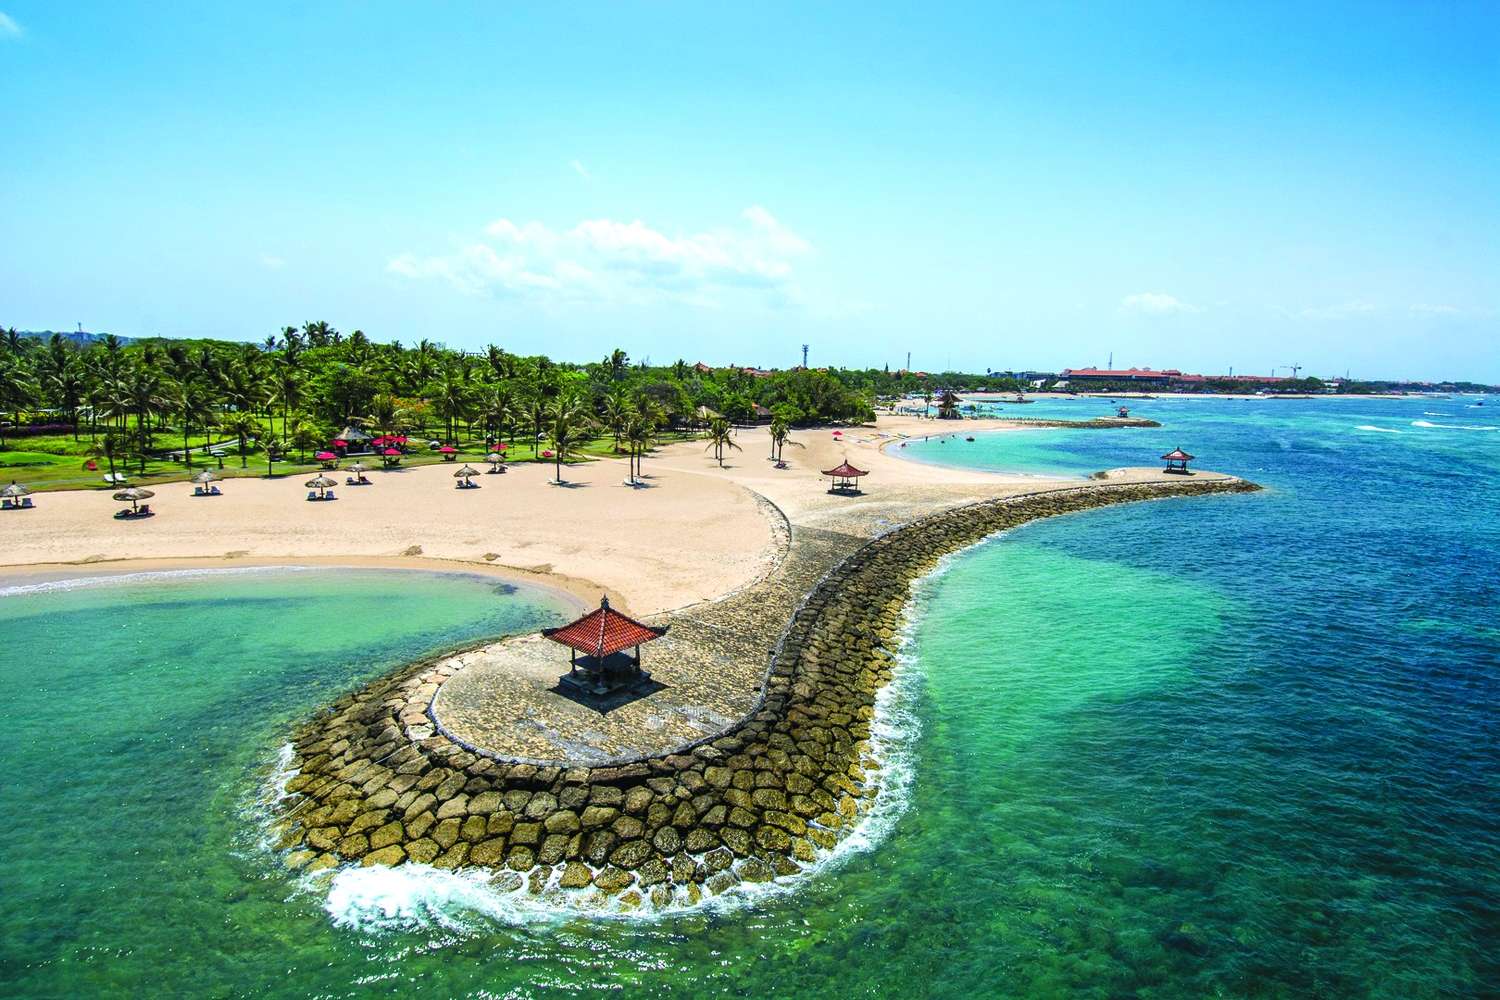 Club Med Bali: part of the Nusa Dua's gated community of five-star resorts